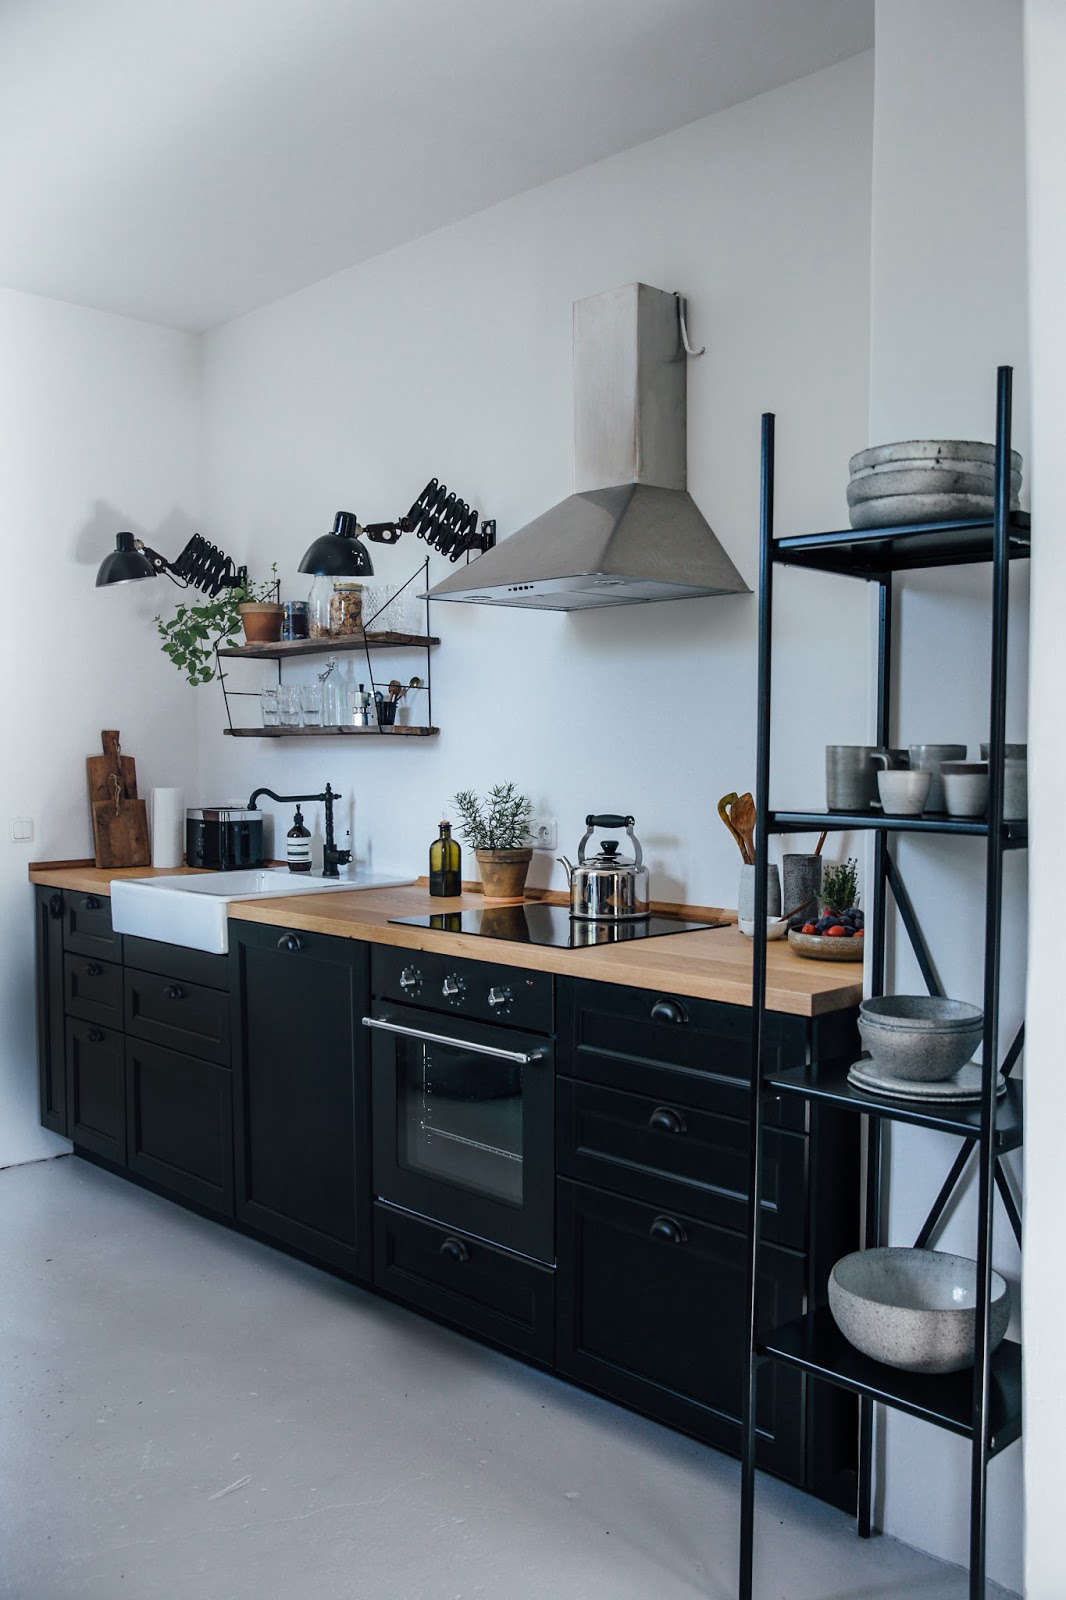 Kitchen of the week a diy ikea country kitchen for two - Plan de travail ikea cuisine ...